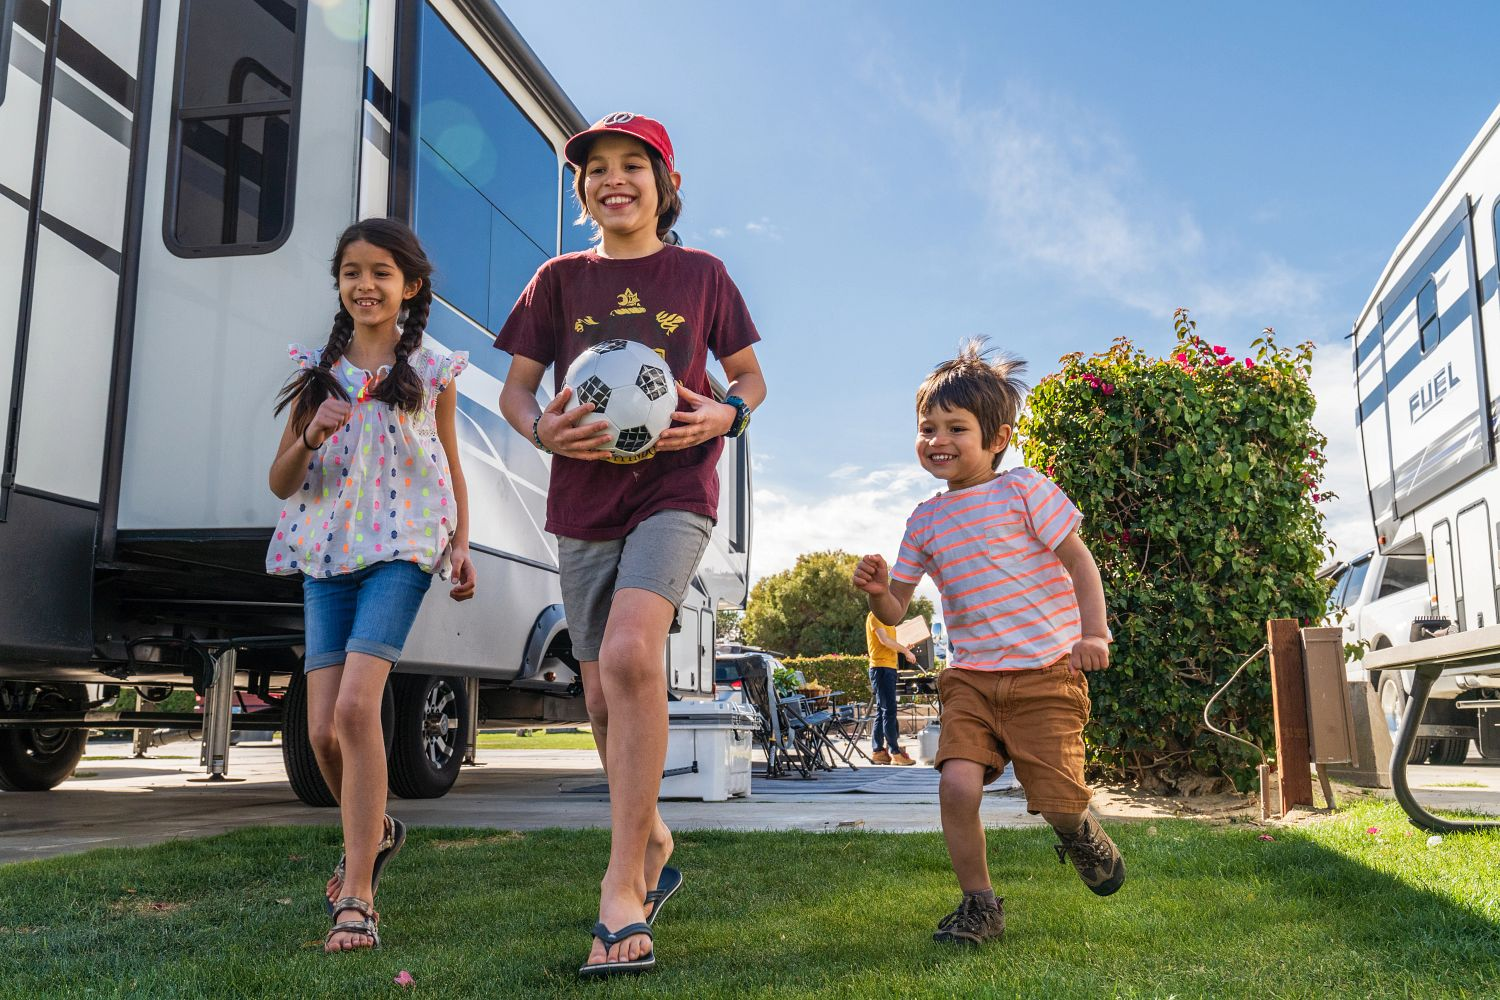 The Harbuck kids play and laugh while traveling by RV.